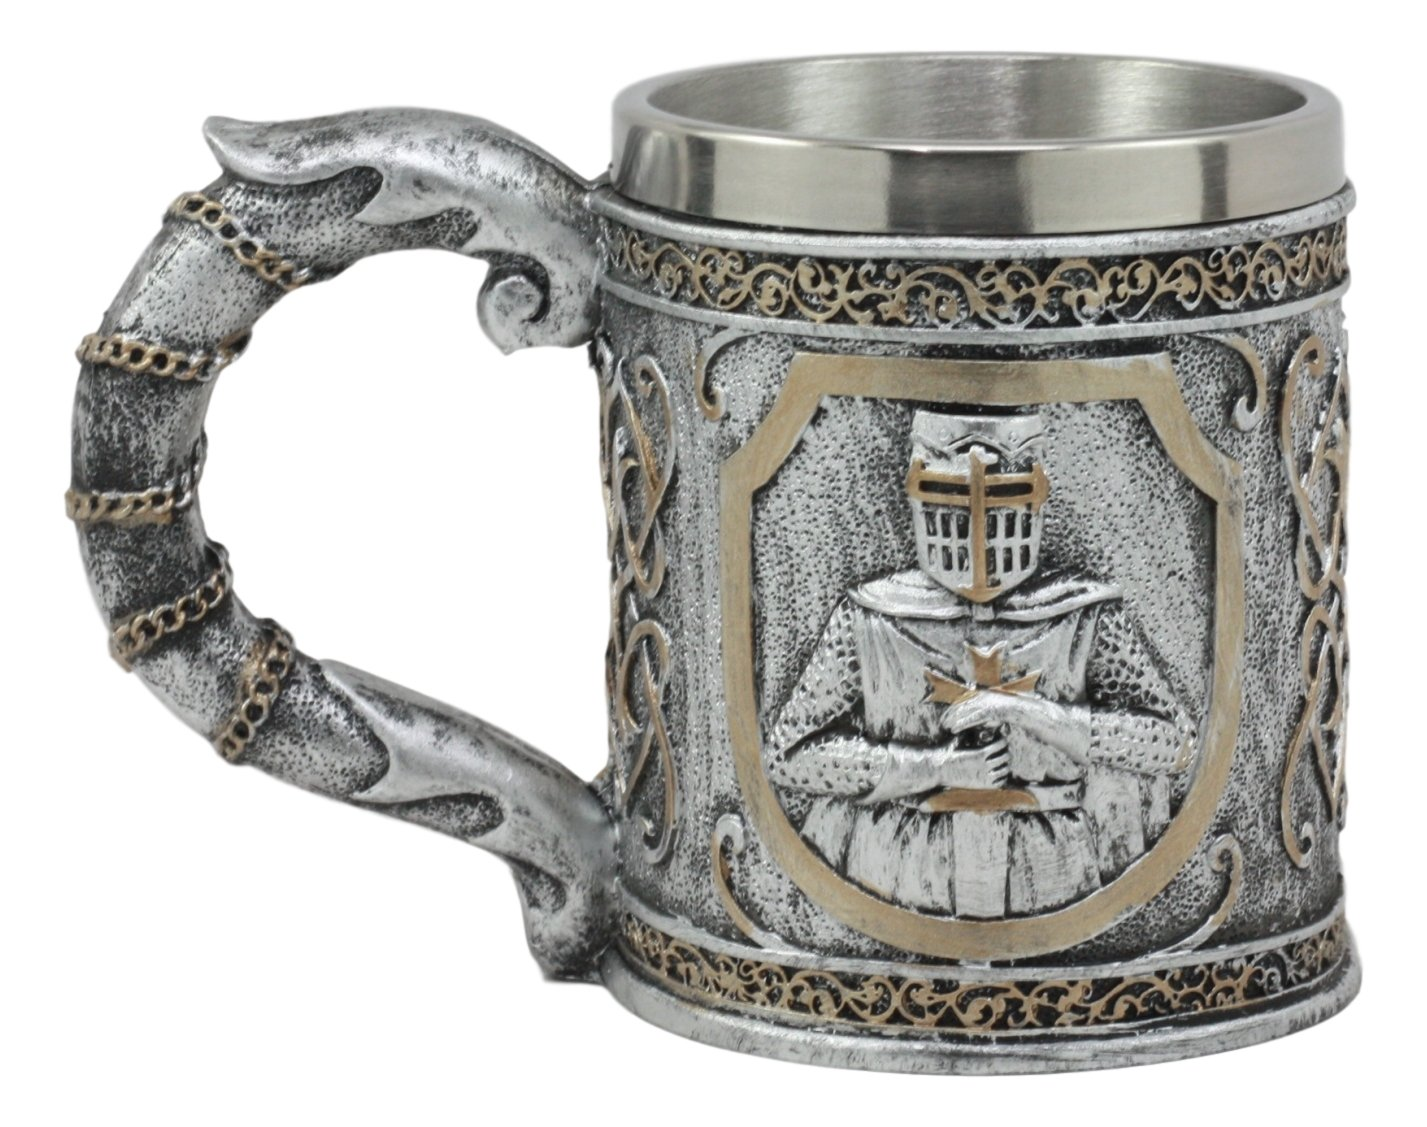 Ebros Medieval Templar Crusader Knight Mug 12oz Suit of Armor Knight Of The Cross Beer Stein Tankard Coffee Cup Atlantic Collectibles